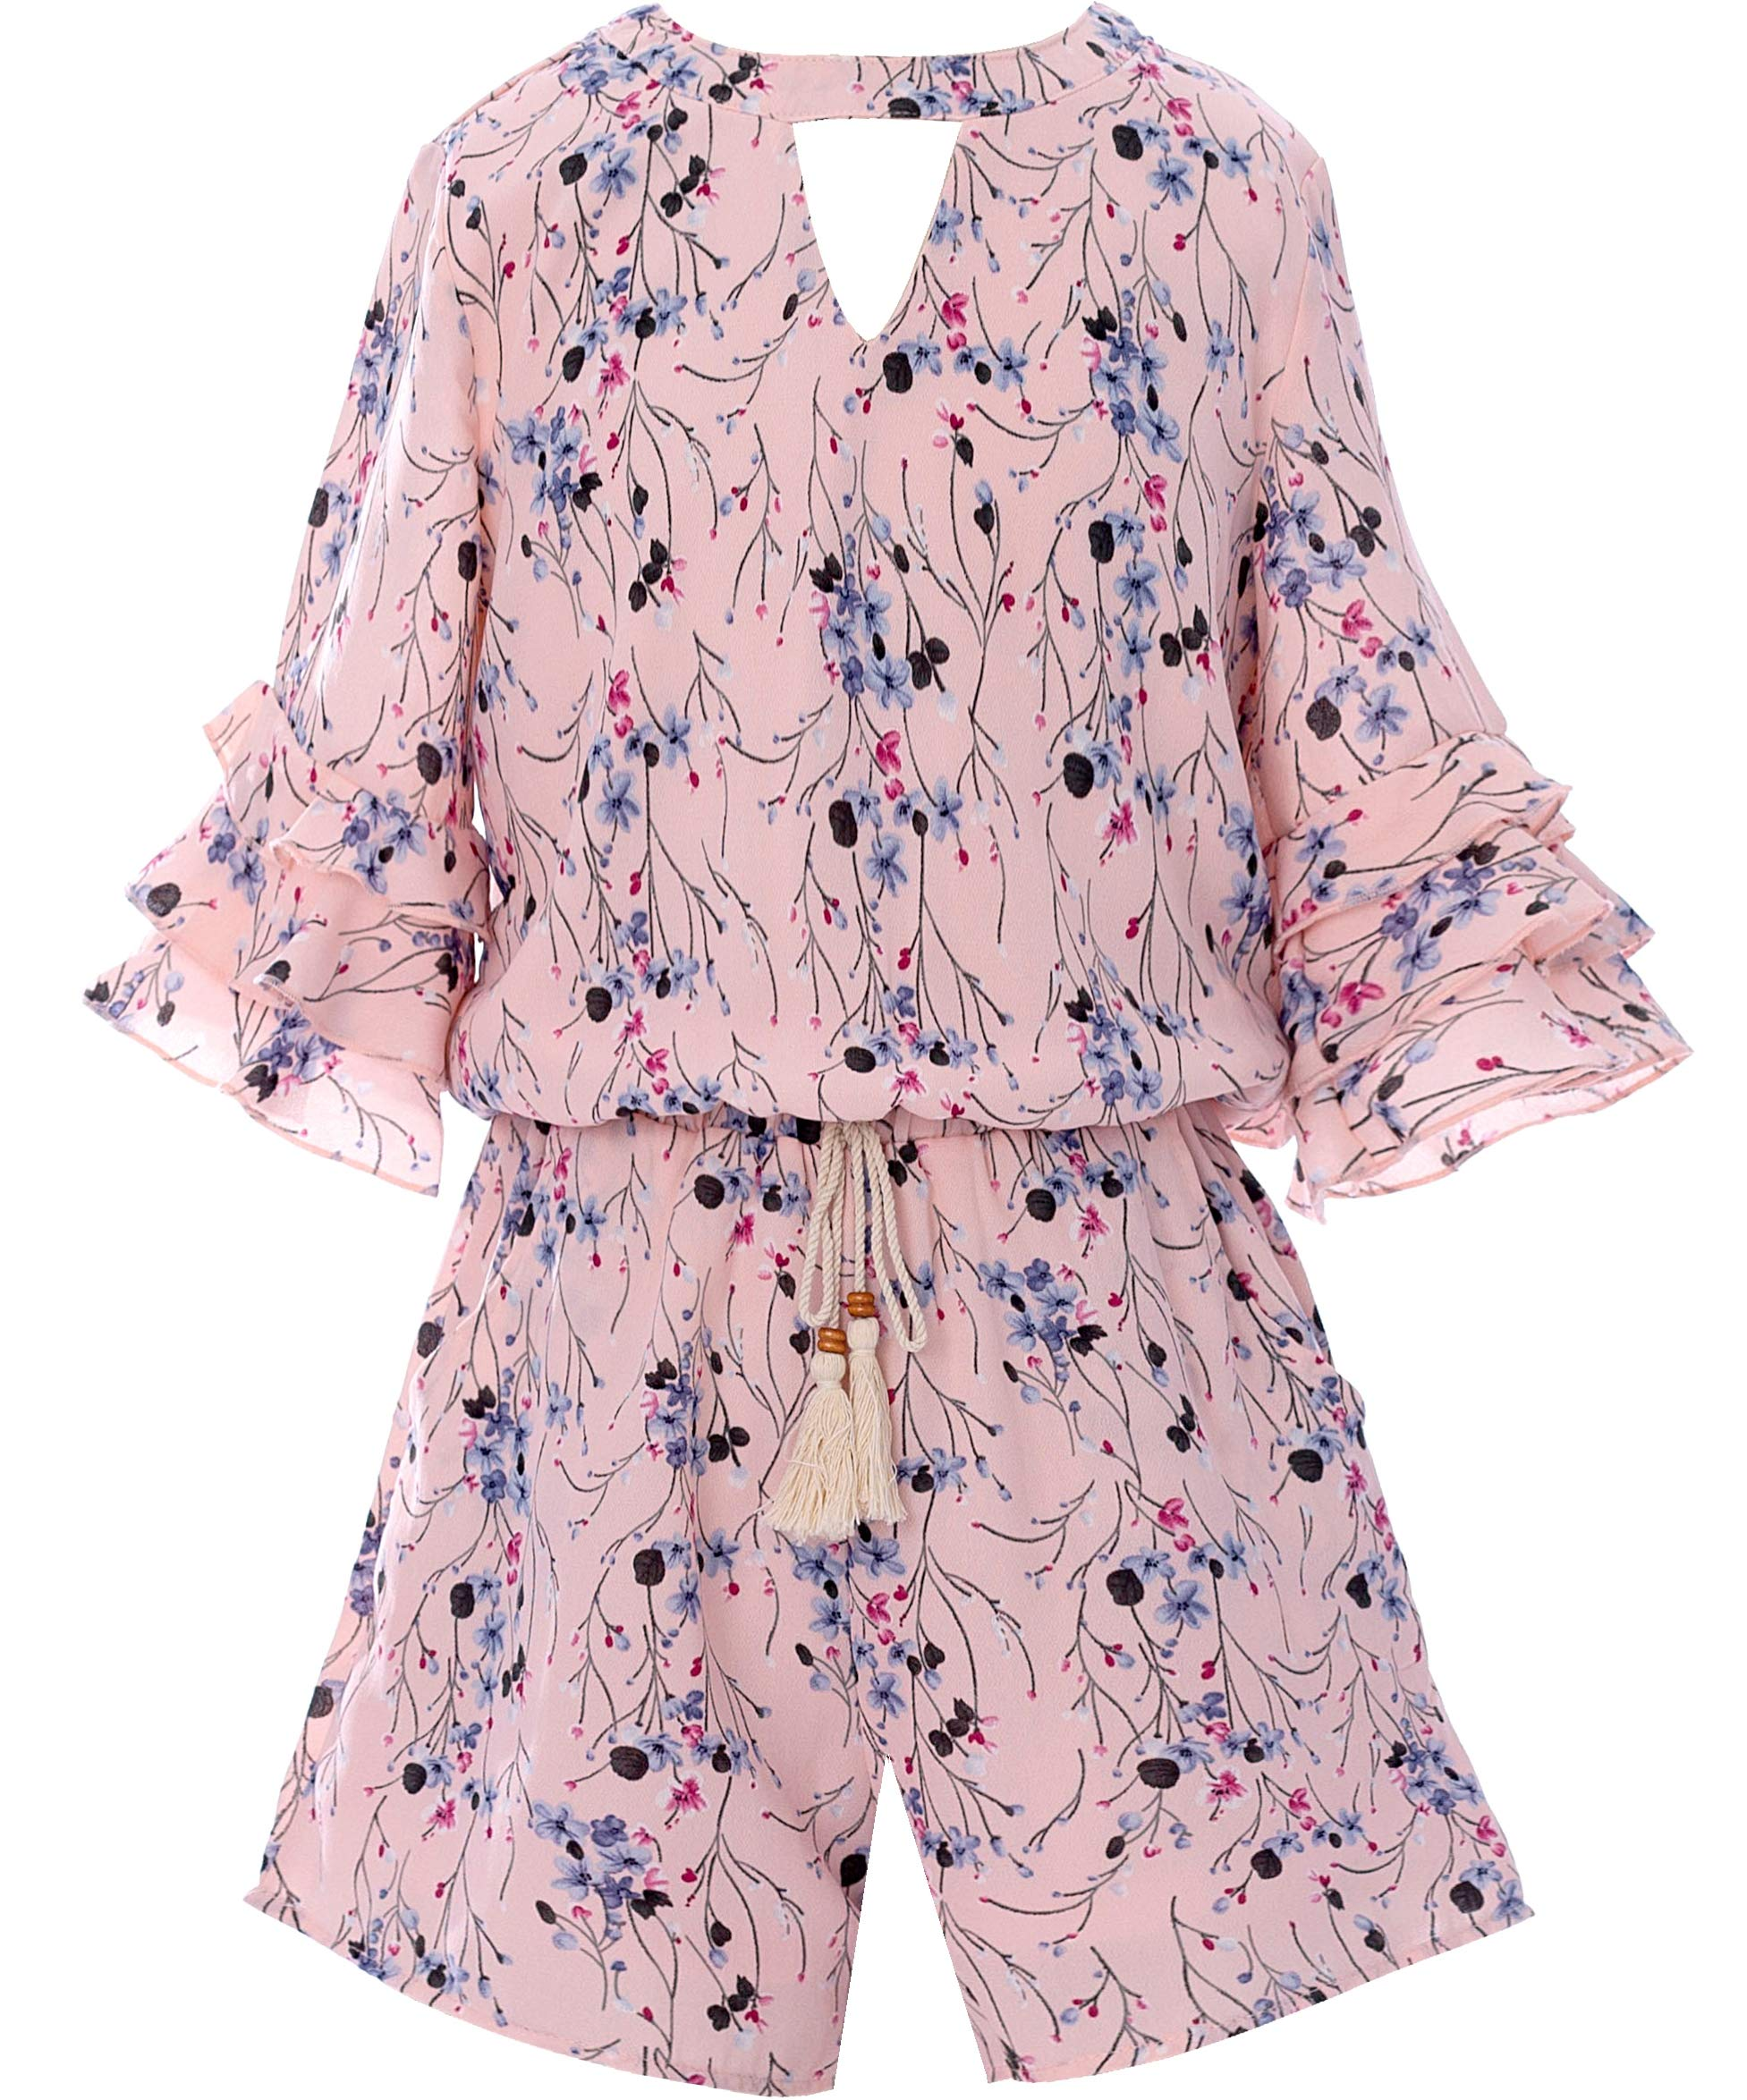 Smukke, Big Girls Gorgeous Floral Printed Romper with Lace Trim (with Options), 7-16, (10, Pink Multi)